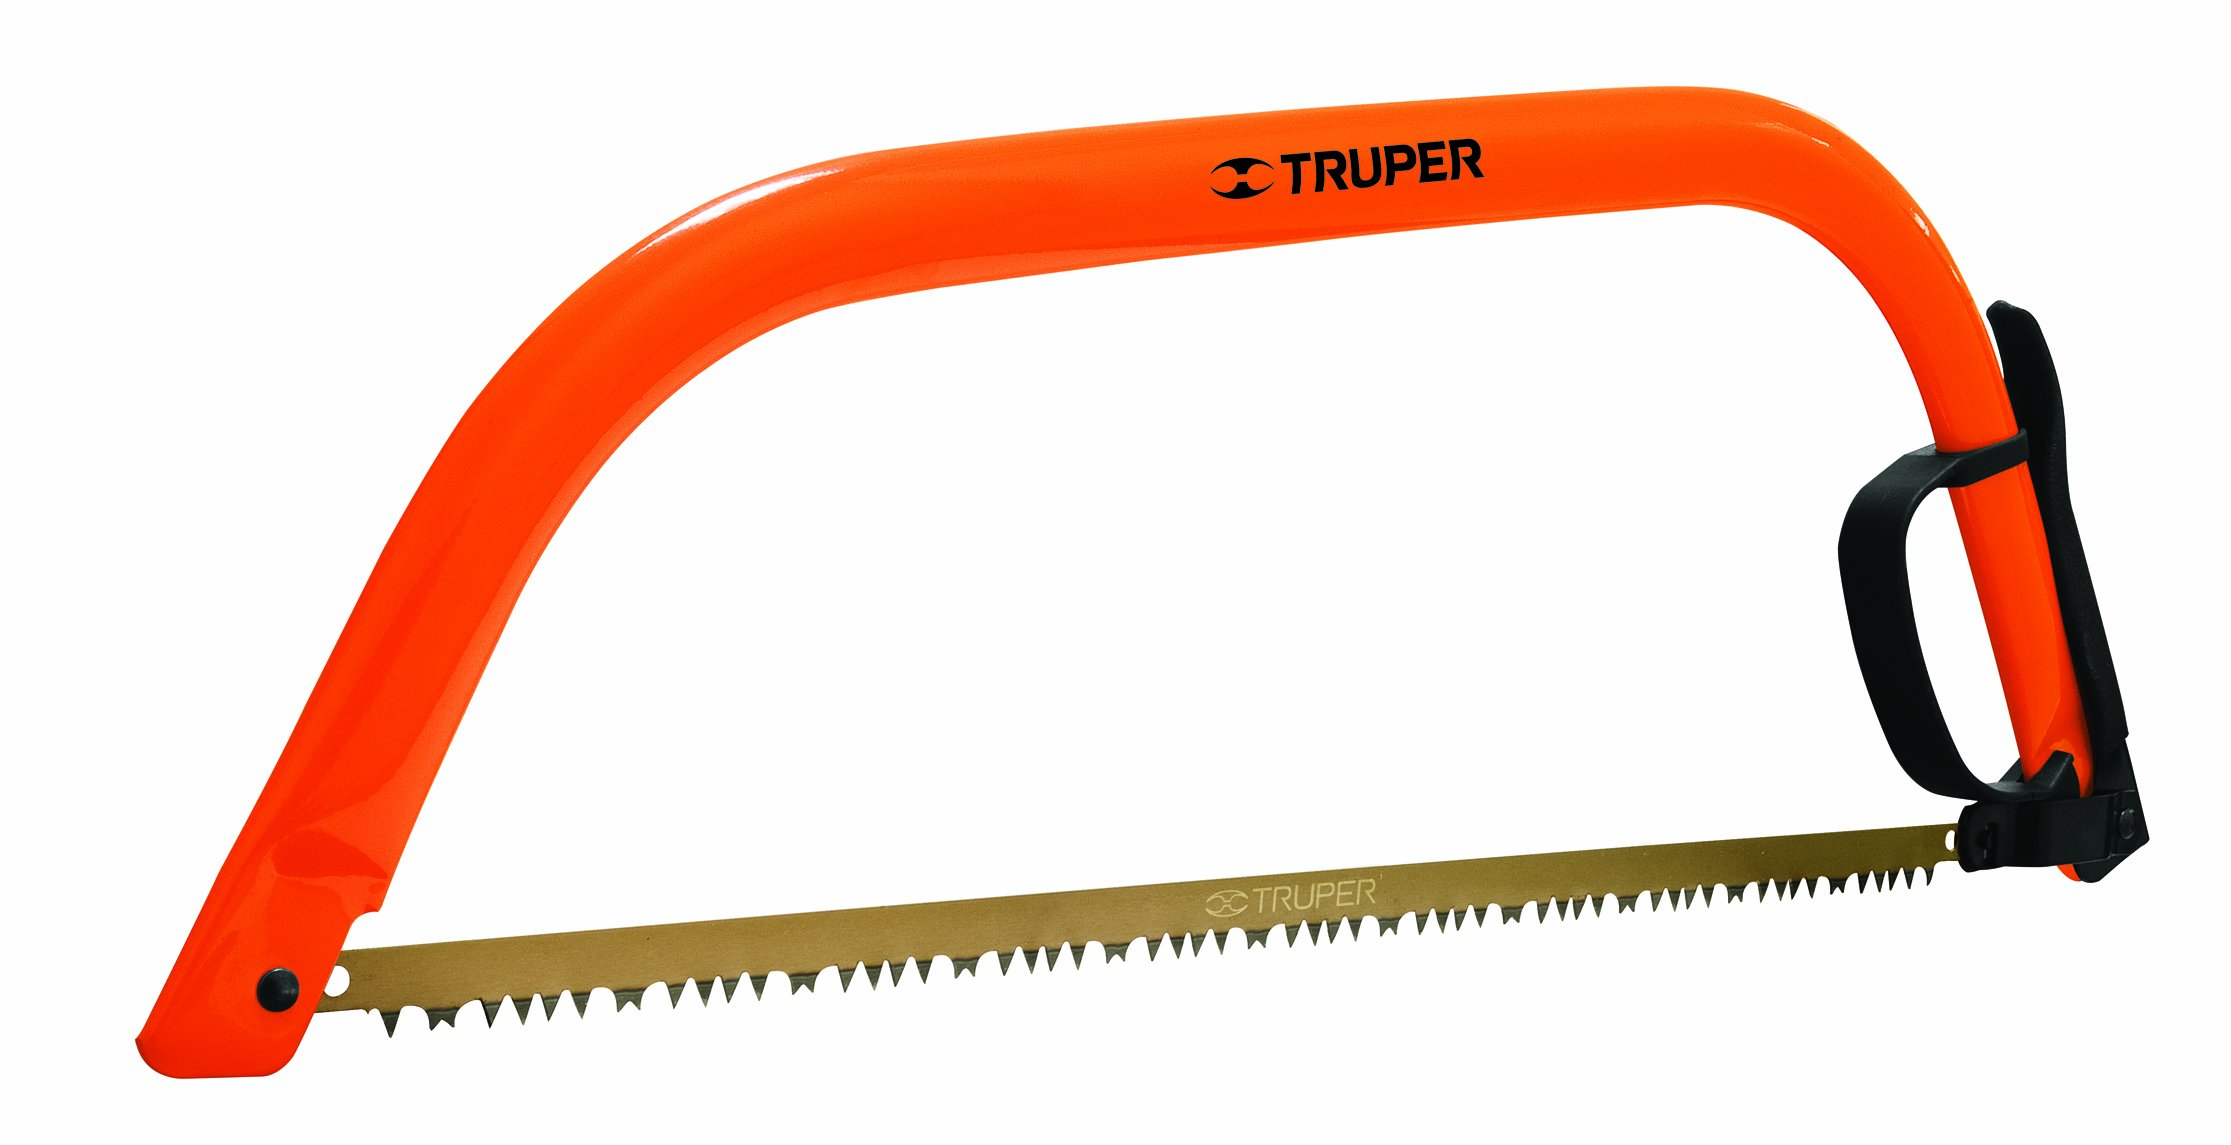 Truper 30257 Steel Handle Bow Saw, 24-Inch Blade by Truper (Image #1)